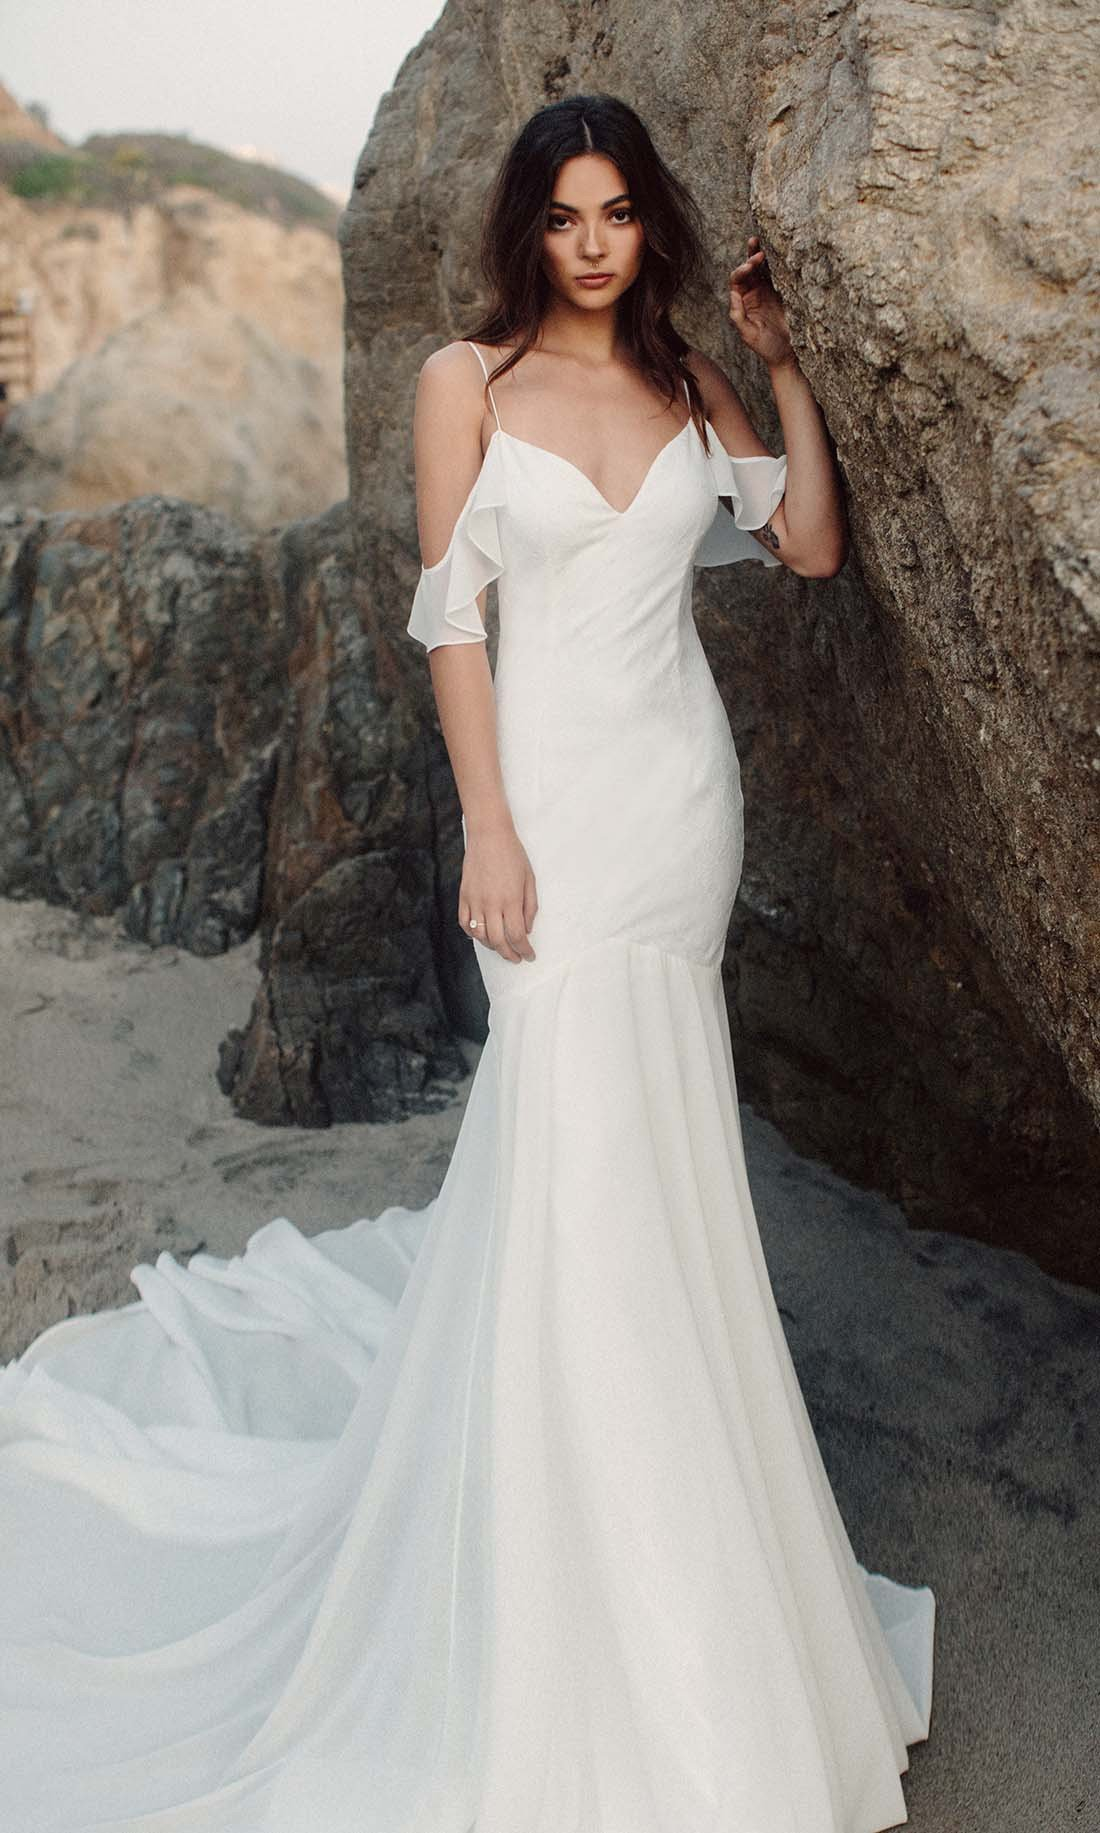 Simple Spaghetti Strap Wedding Dress | Simple Mermaid Spaghetti Straps Wedding Dress Off Shoulder Satin